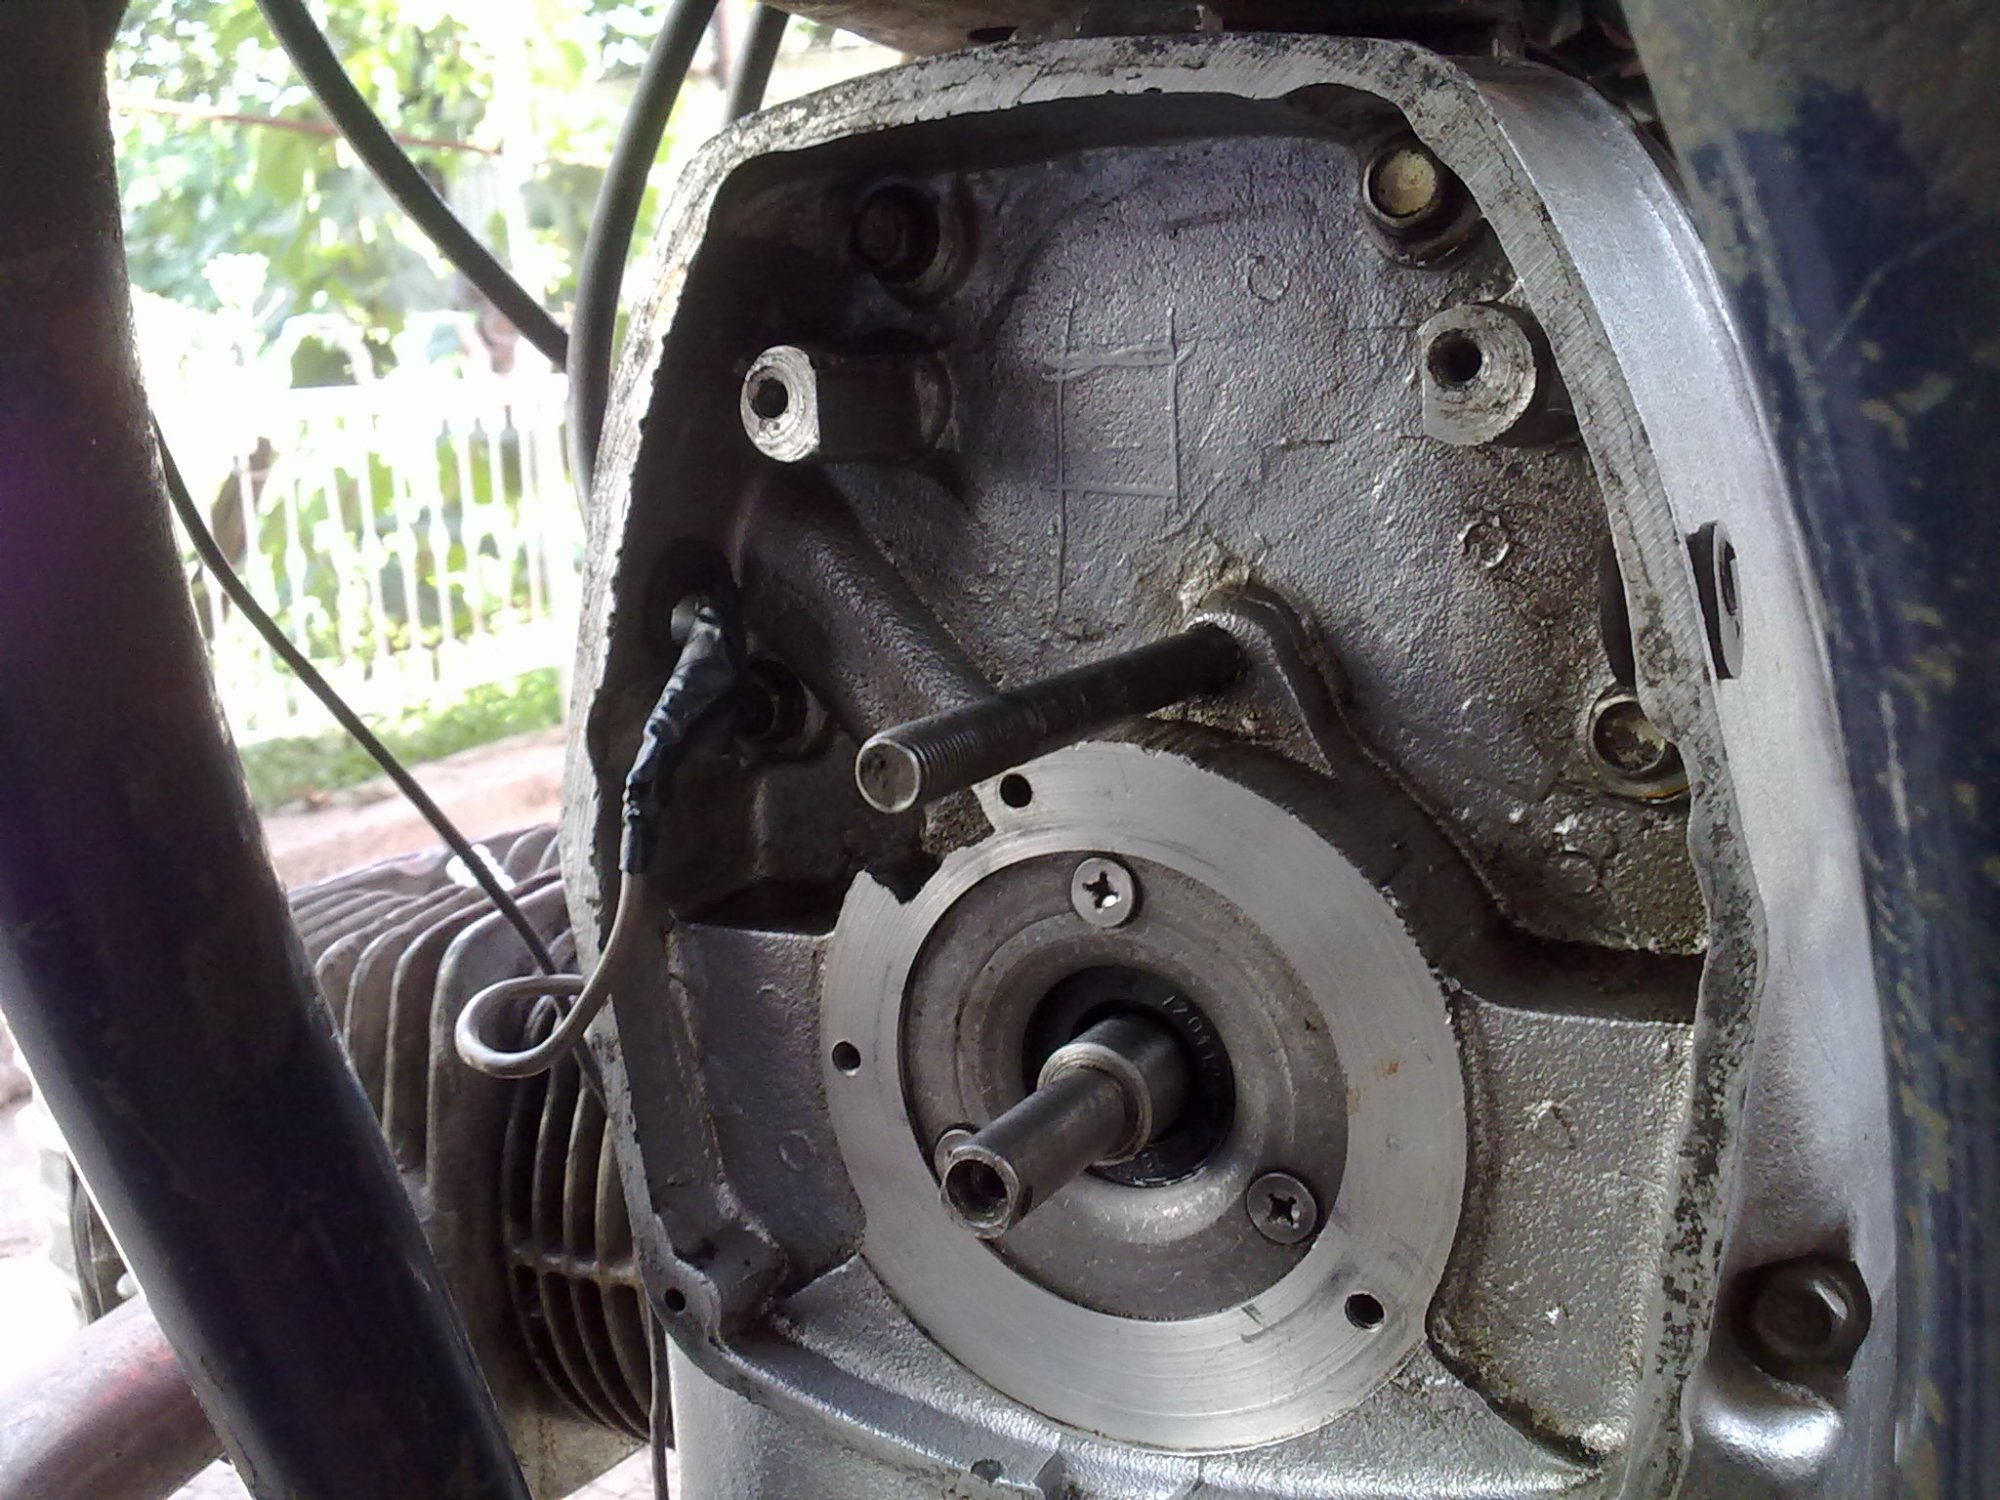 hight resolution of you need to open the ignition cover at the front of the engine to find the ignition system disconnect the wires going to spark plugs and remove